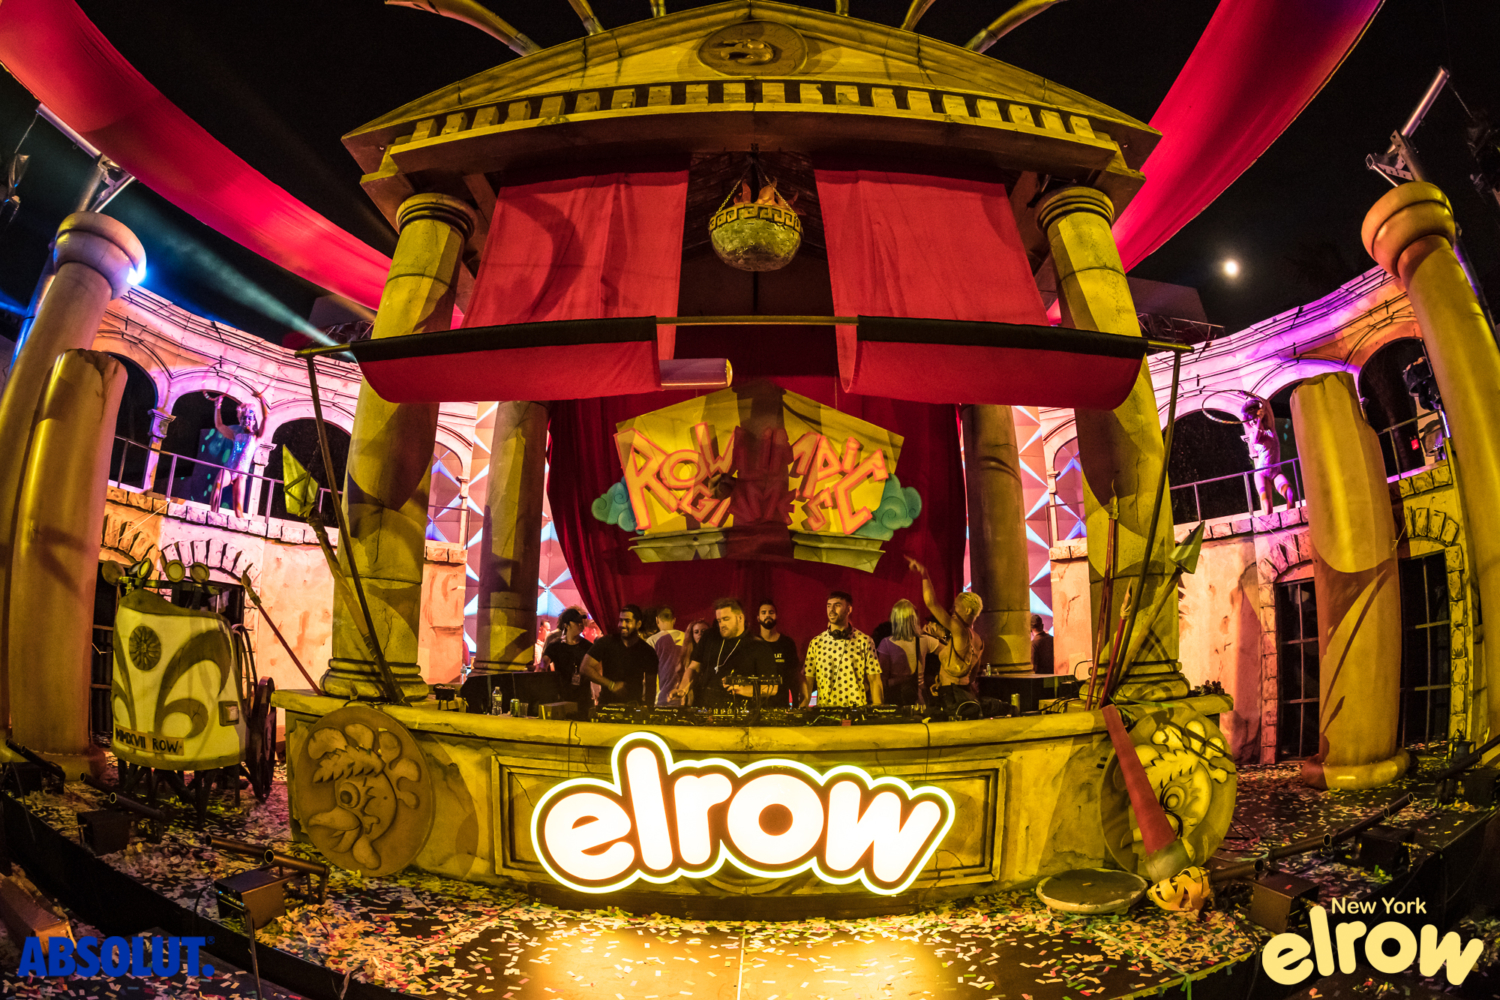 Making magic happen at Elrow Open Air – photos by aLIVE coverageELROW2018 0729 035120 0358 ALIVECOVERAGE